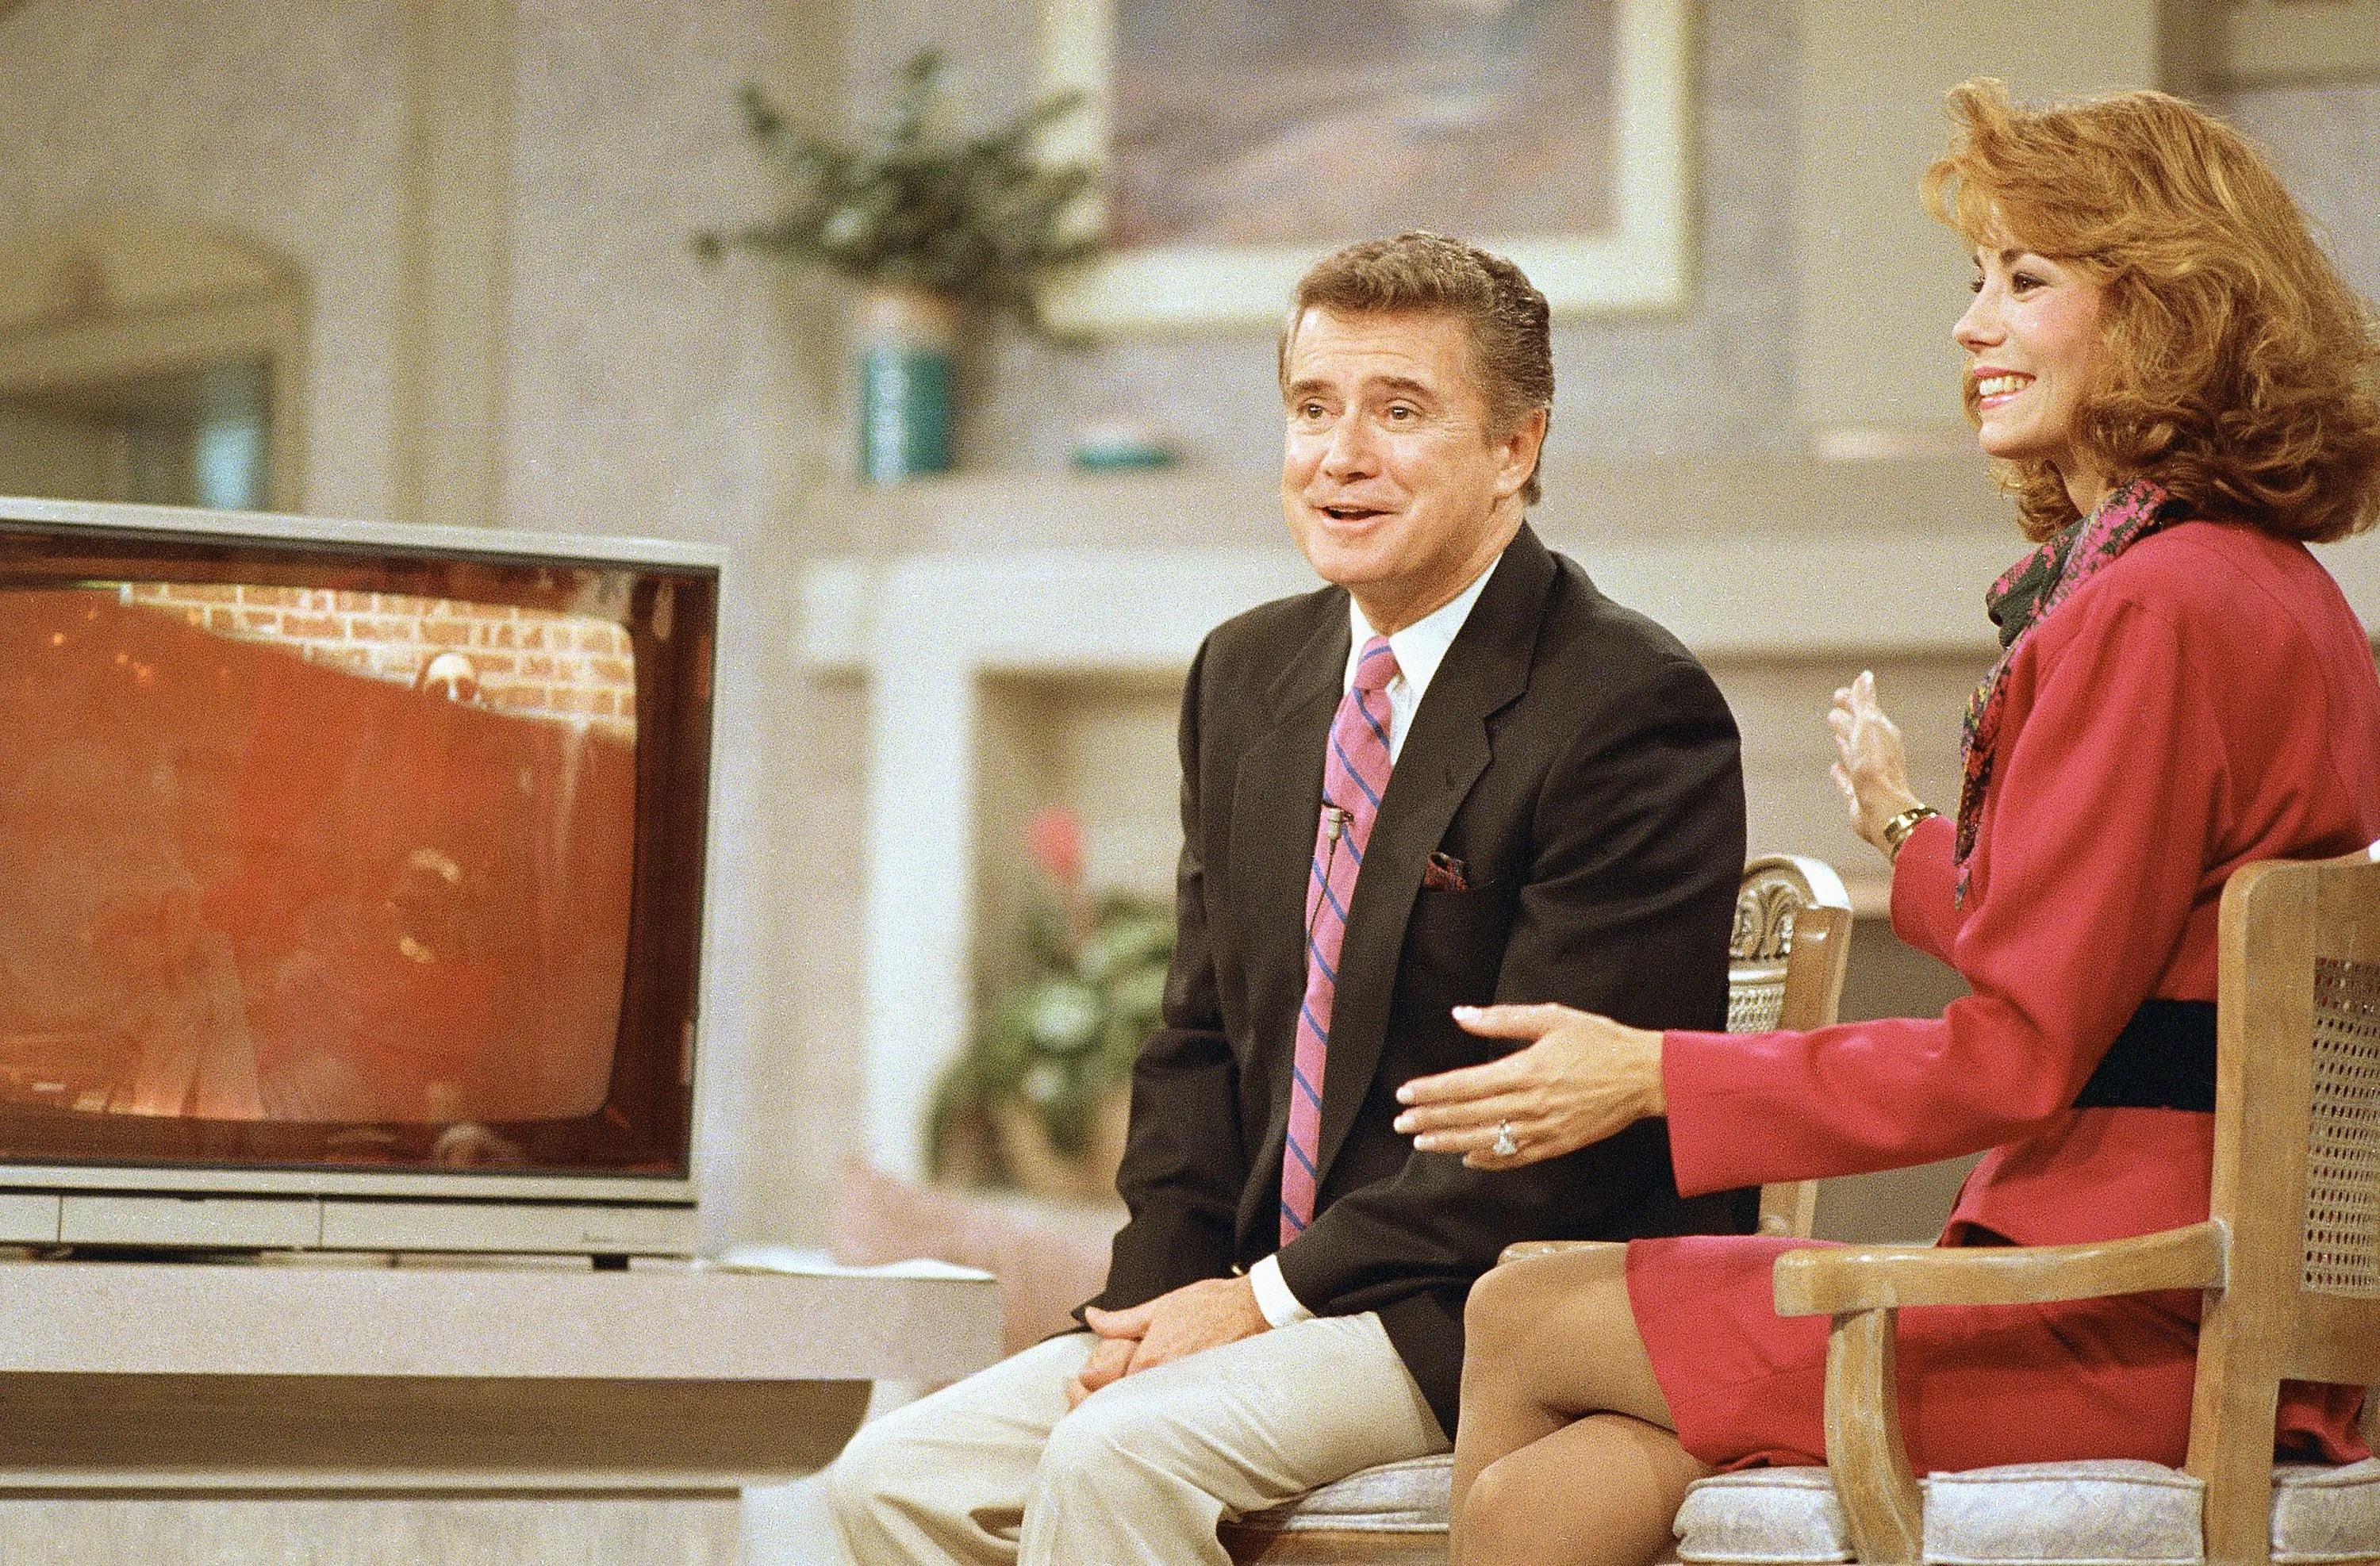 """Regis Philbin and Kathie Lee Gifford react during a WABC-TV broadcast of """"Live! With Regis and Kathie Lee"""" on Sept. 8, 1988, in New York."""